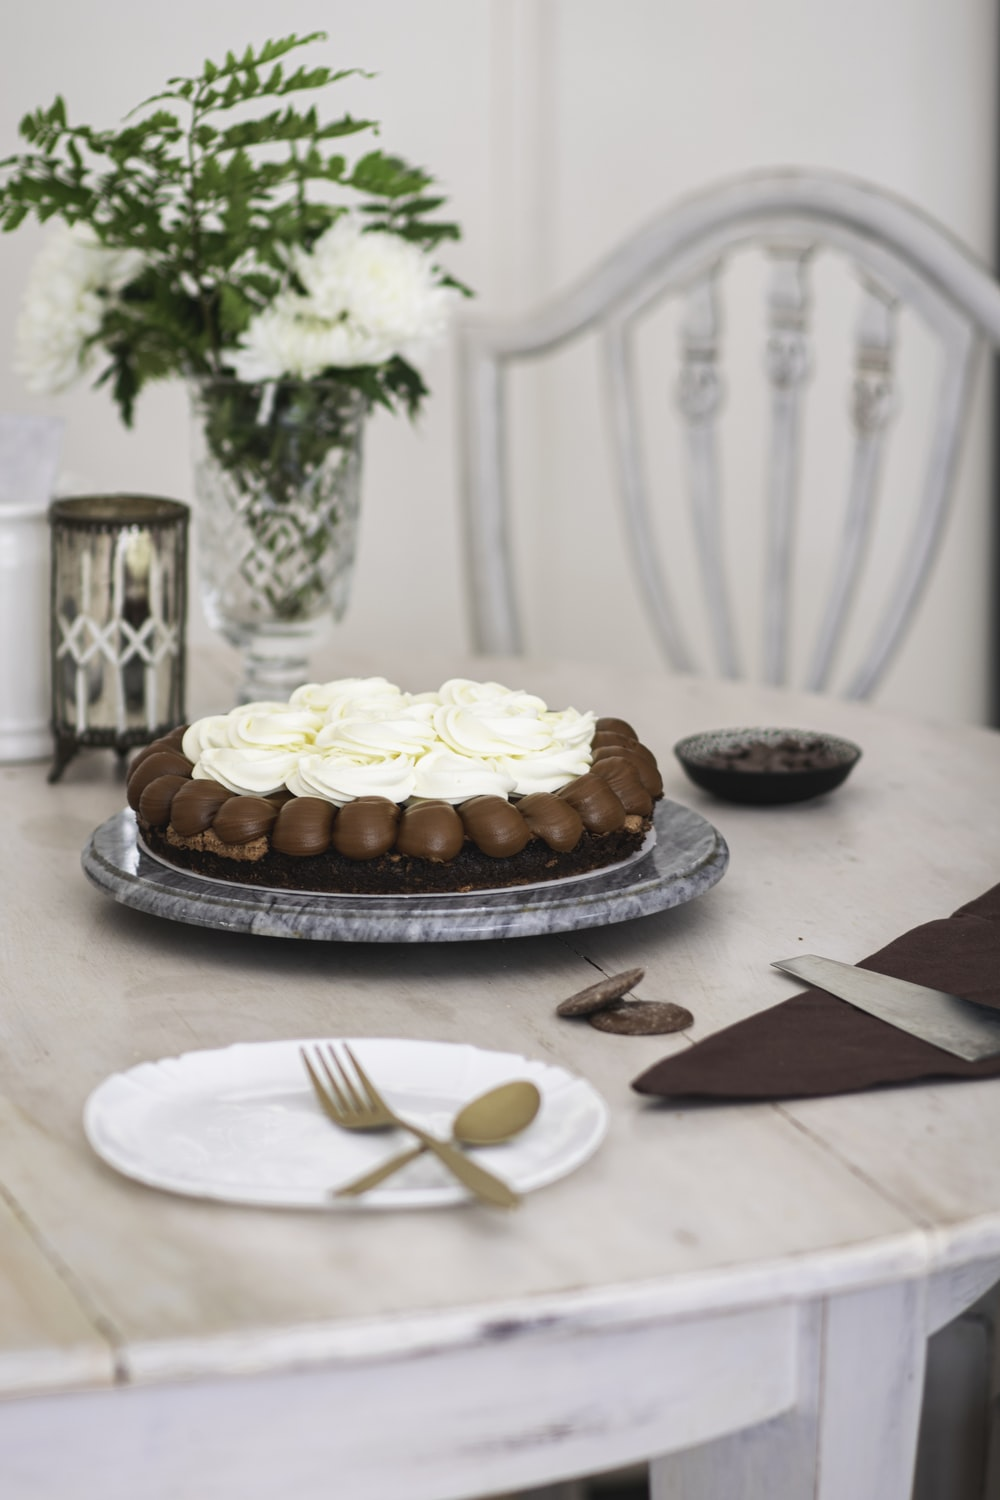 brown and white cake on white ceramic plate